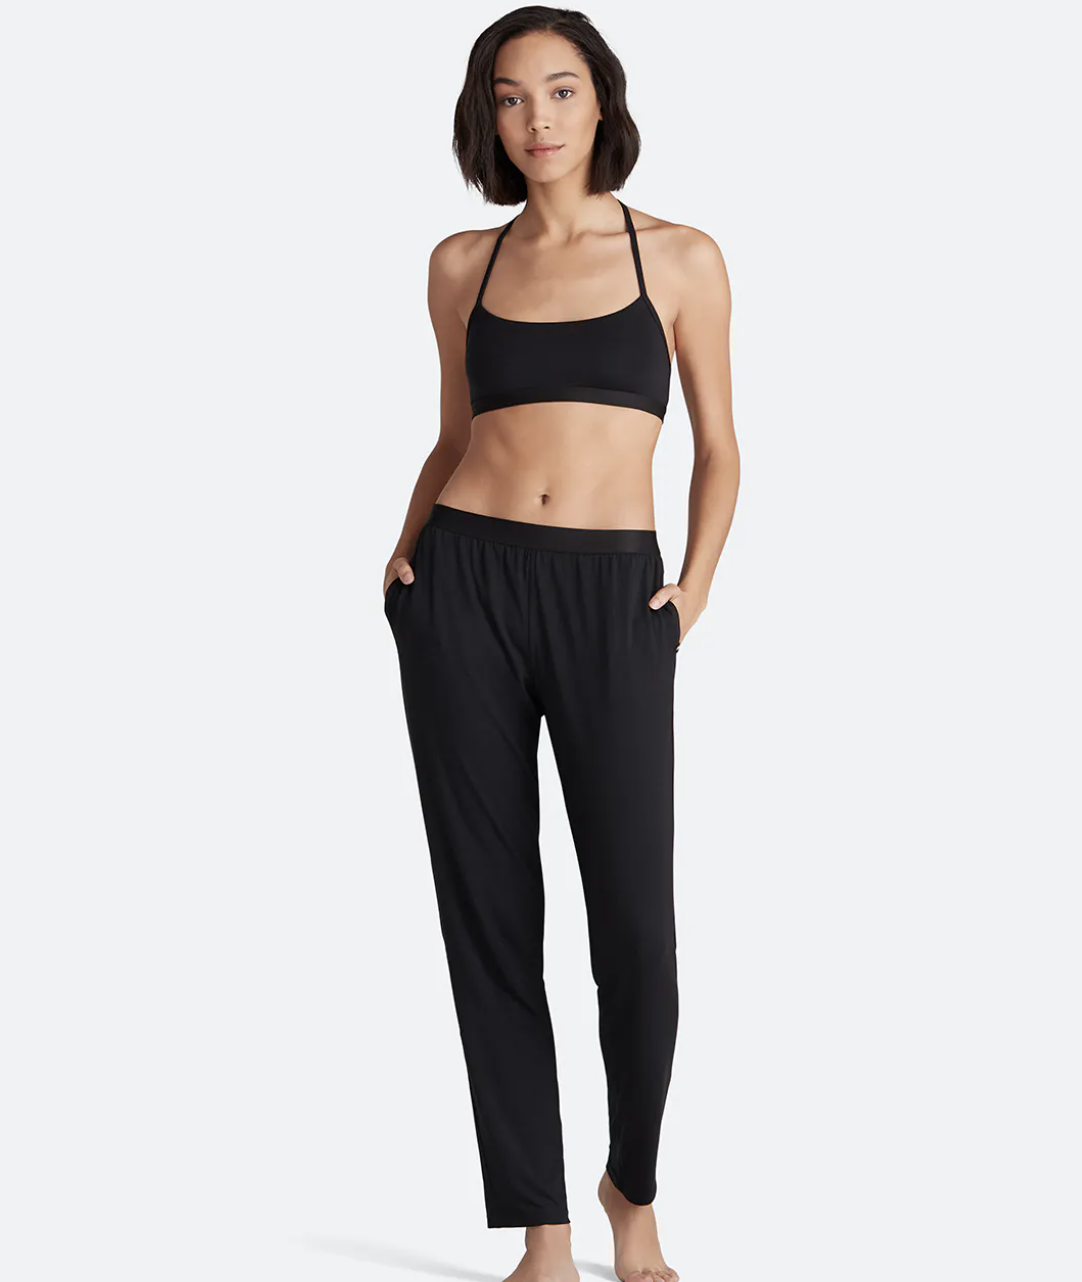 Model wearing the longe pants in black with loose fit and pockets on either side